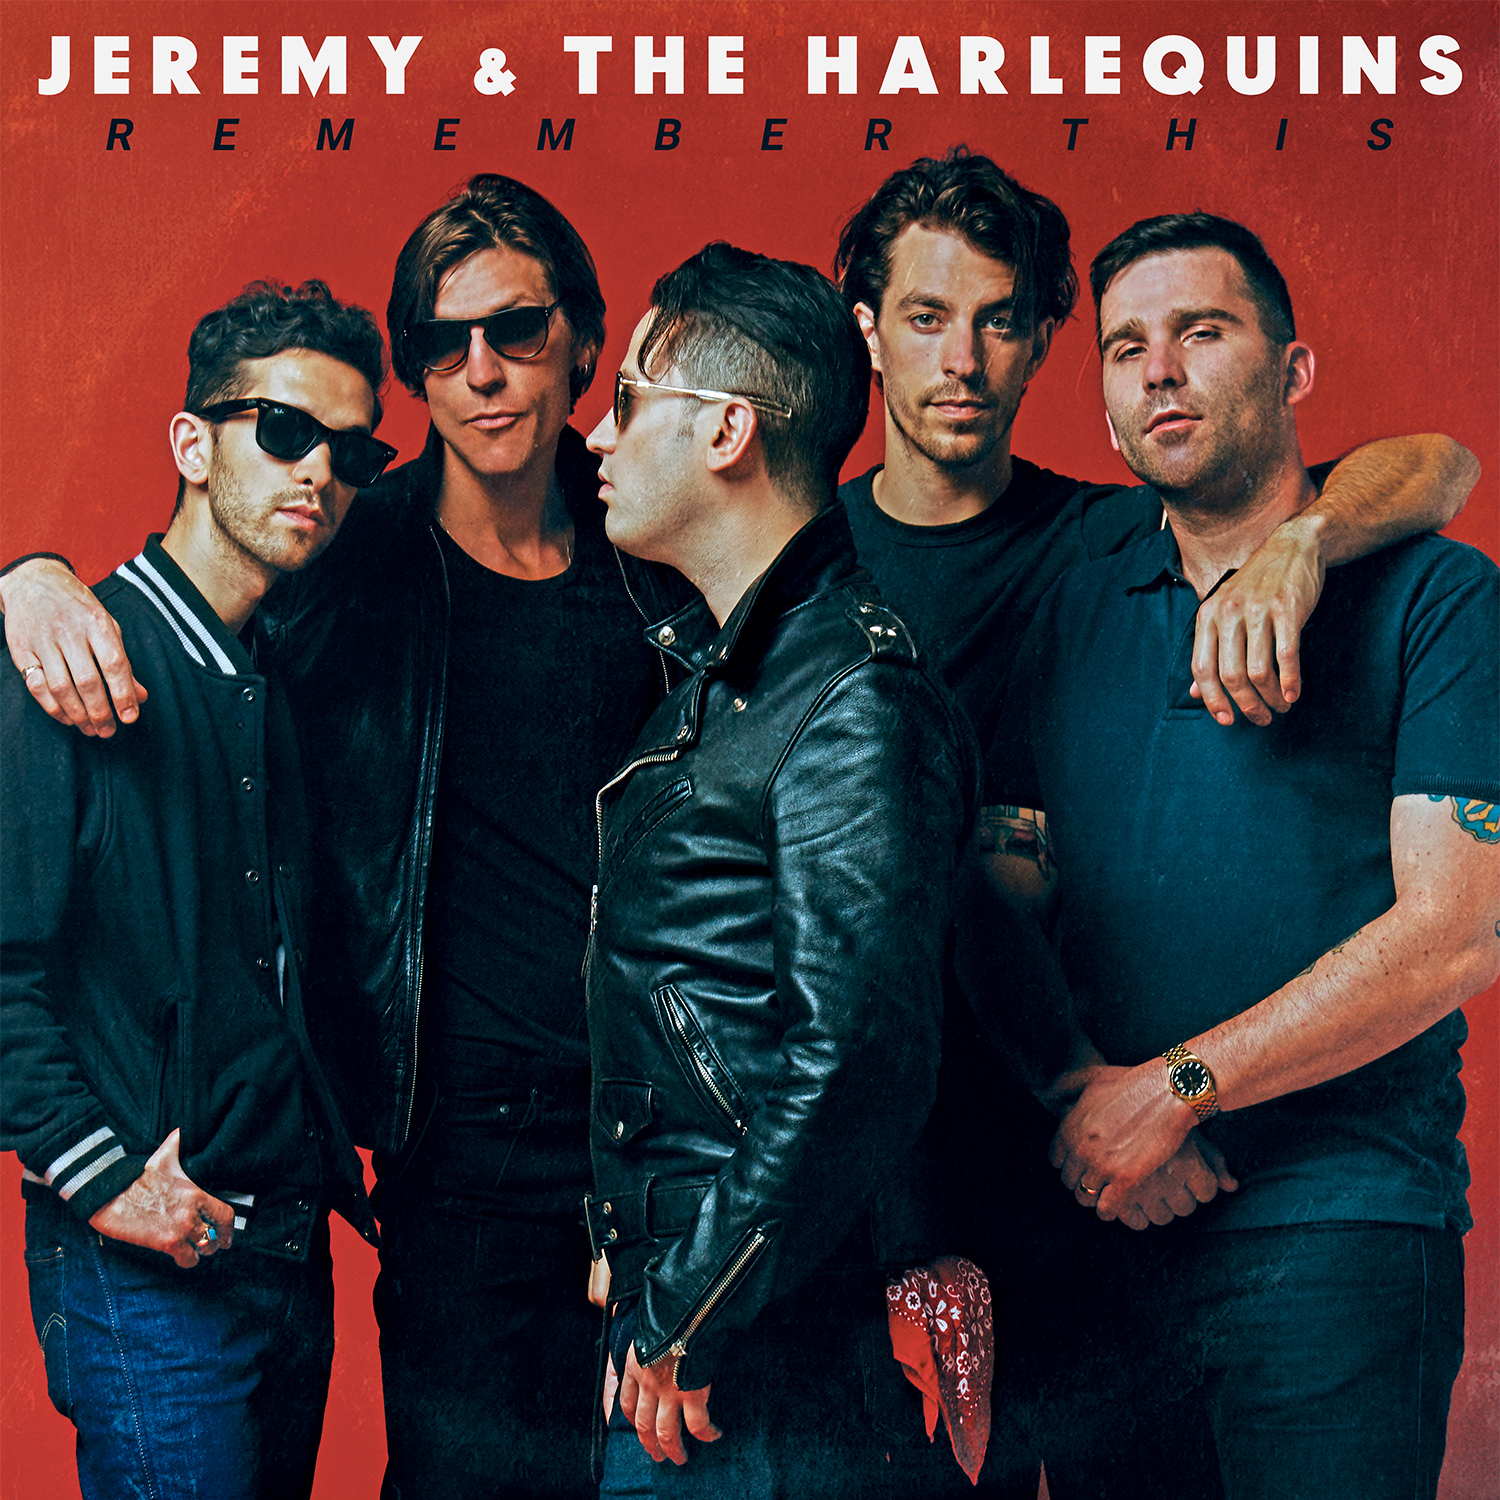 JeremyAndTheHarlequins_RememberThis_COVER.jpg